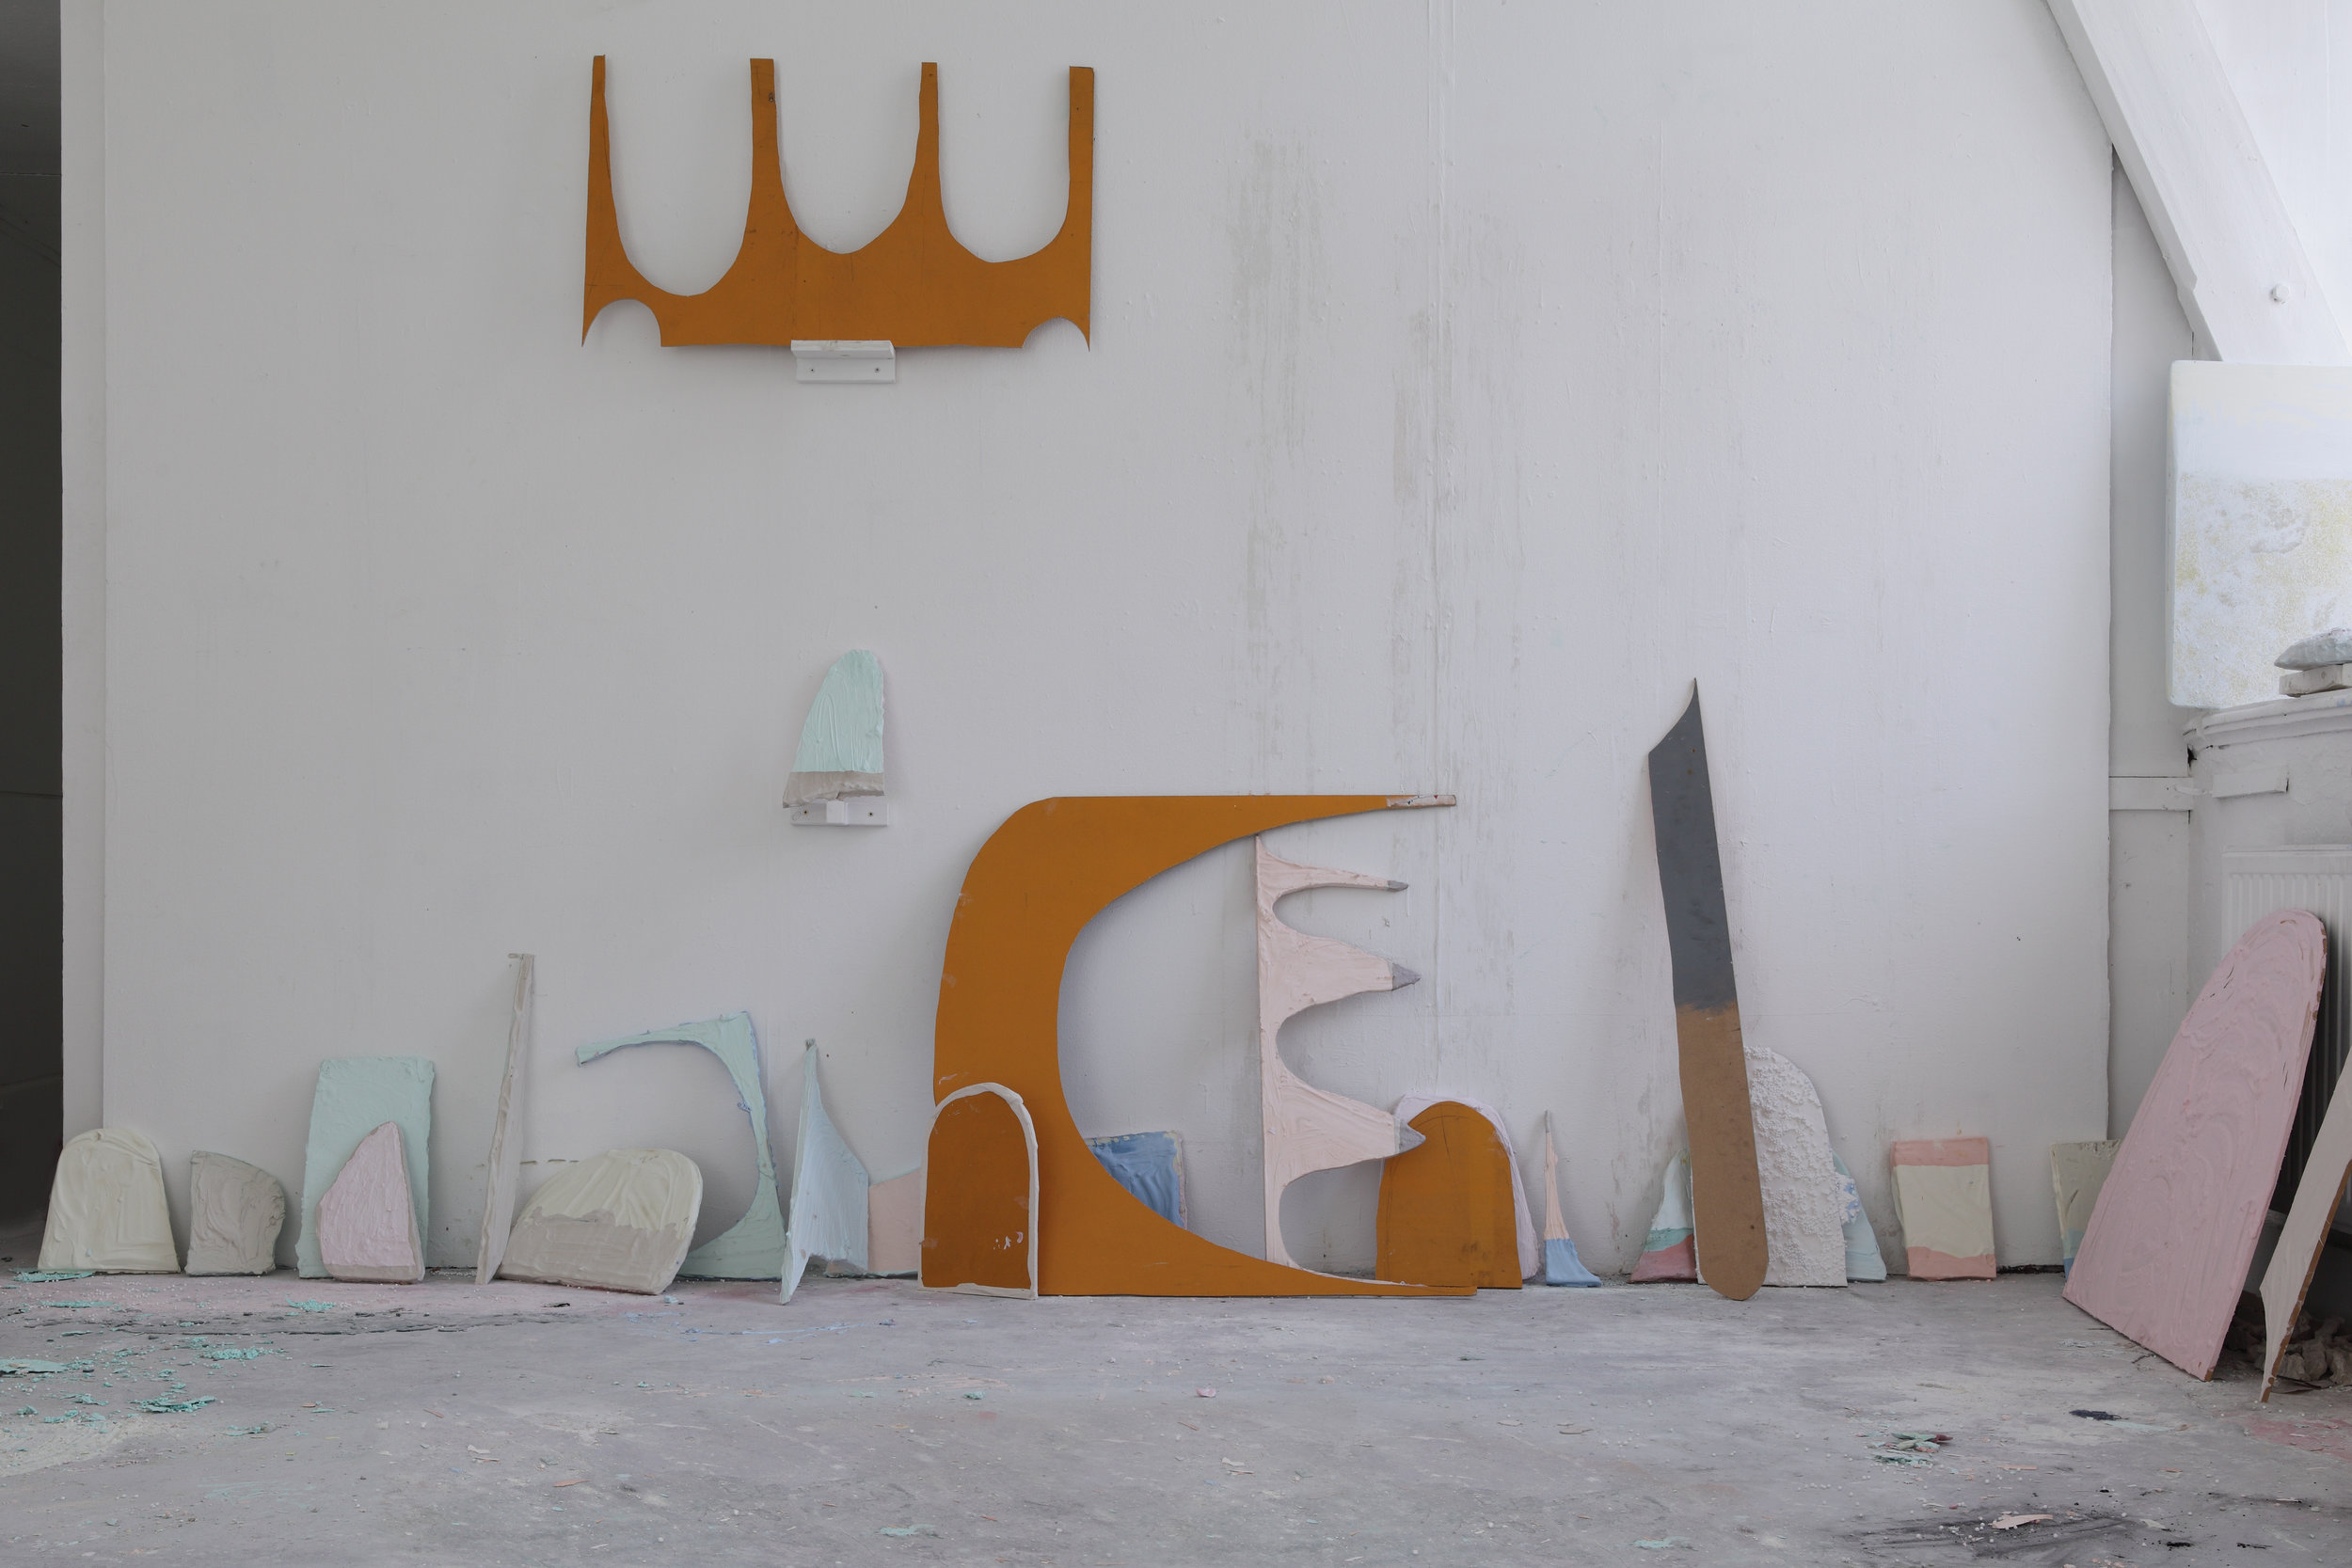 Studio View 2014 - Wood, plaster, pigments, 24 - 60 cm, Maastricht, 2014